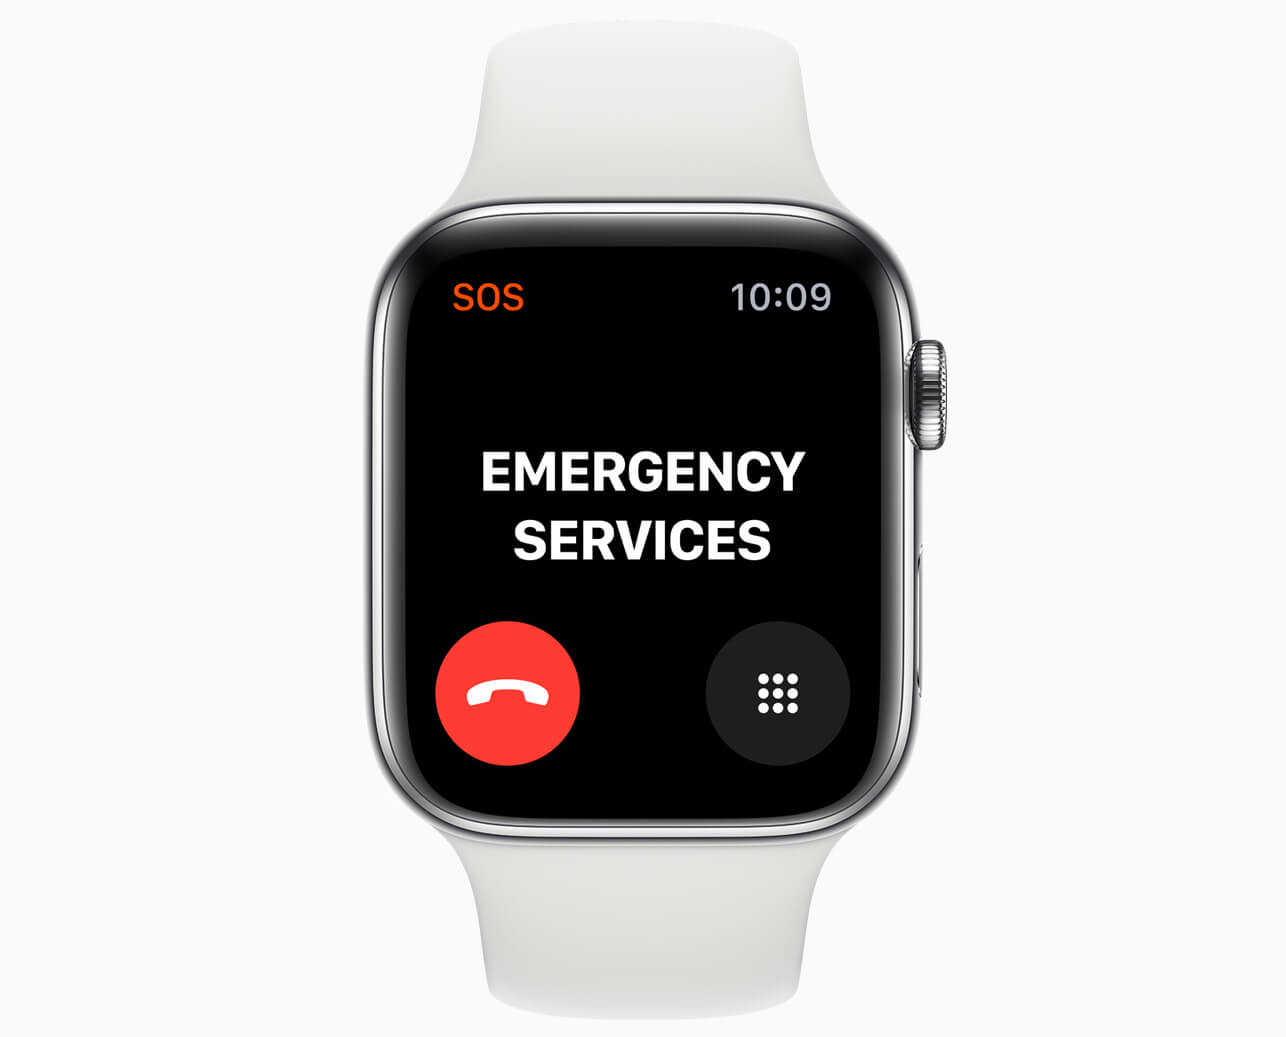 Apple watch series 5 sos call emergency services screen 091019